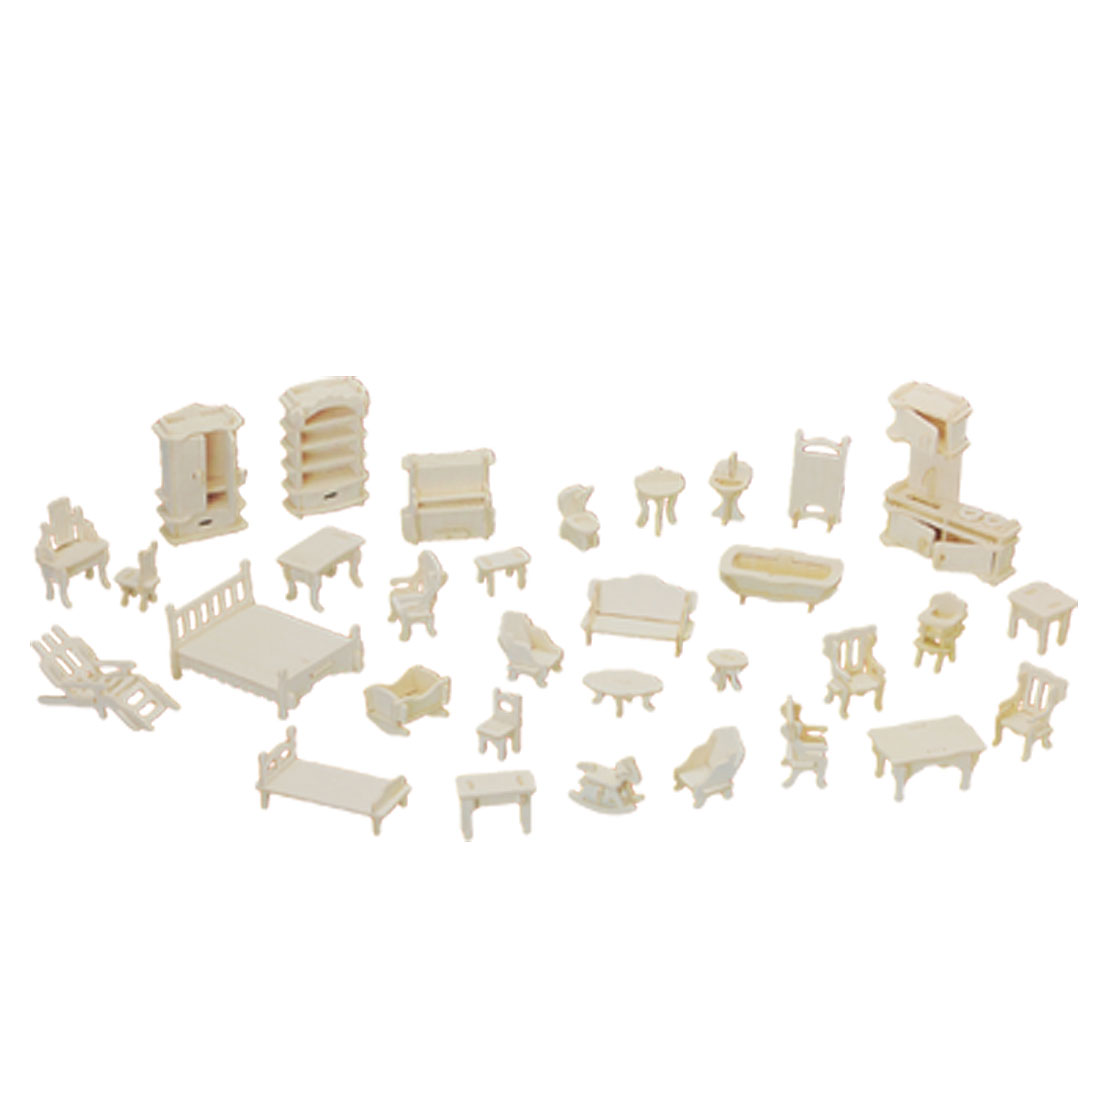 Toy Child's Bedroom Wooden Craft Construction Puzzle Kit